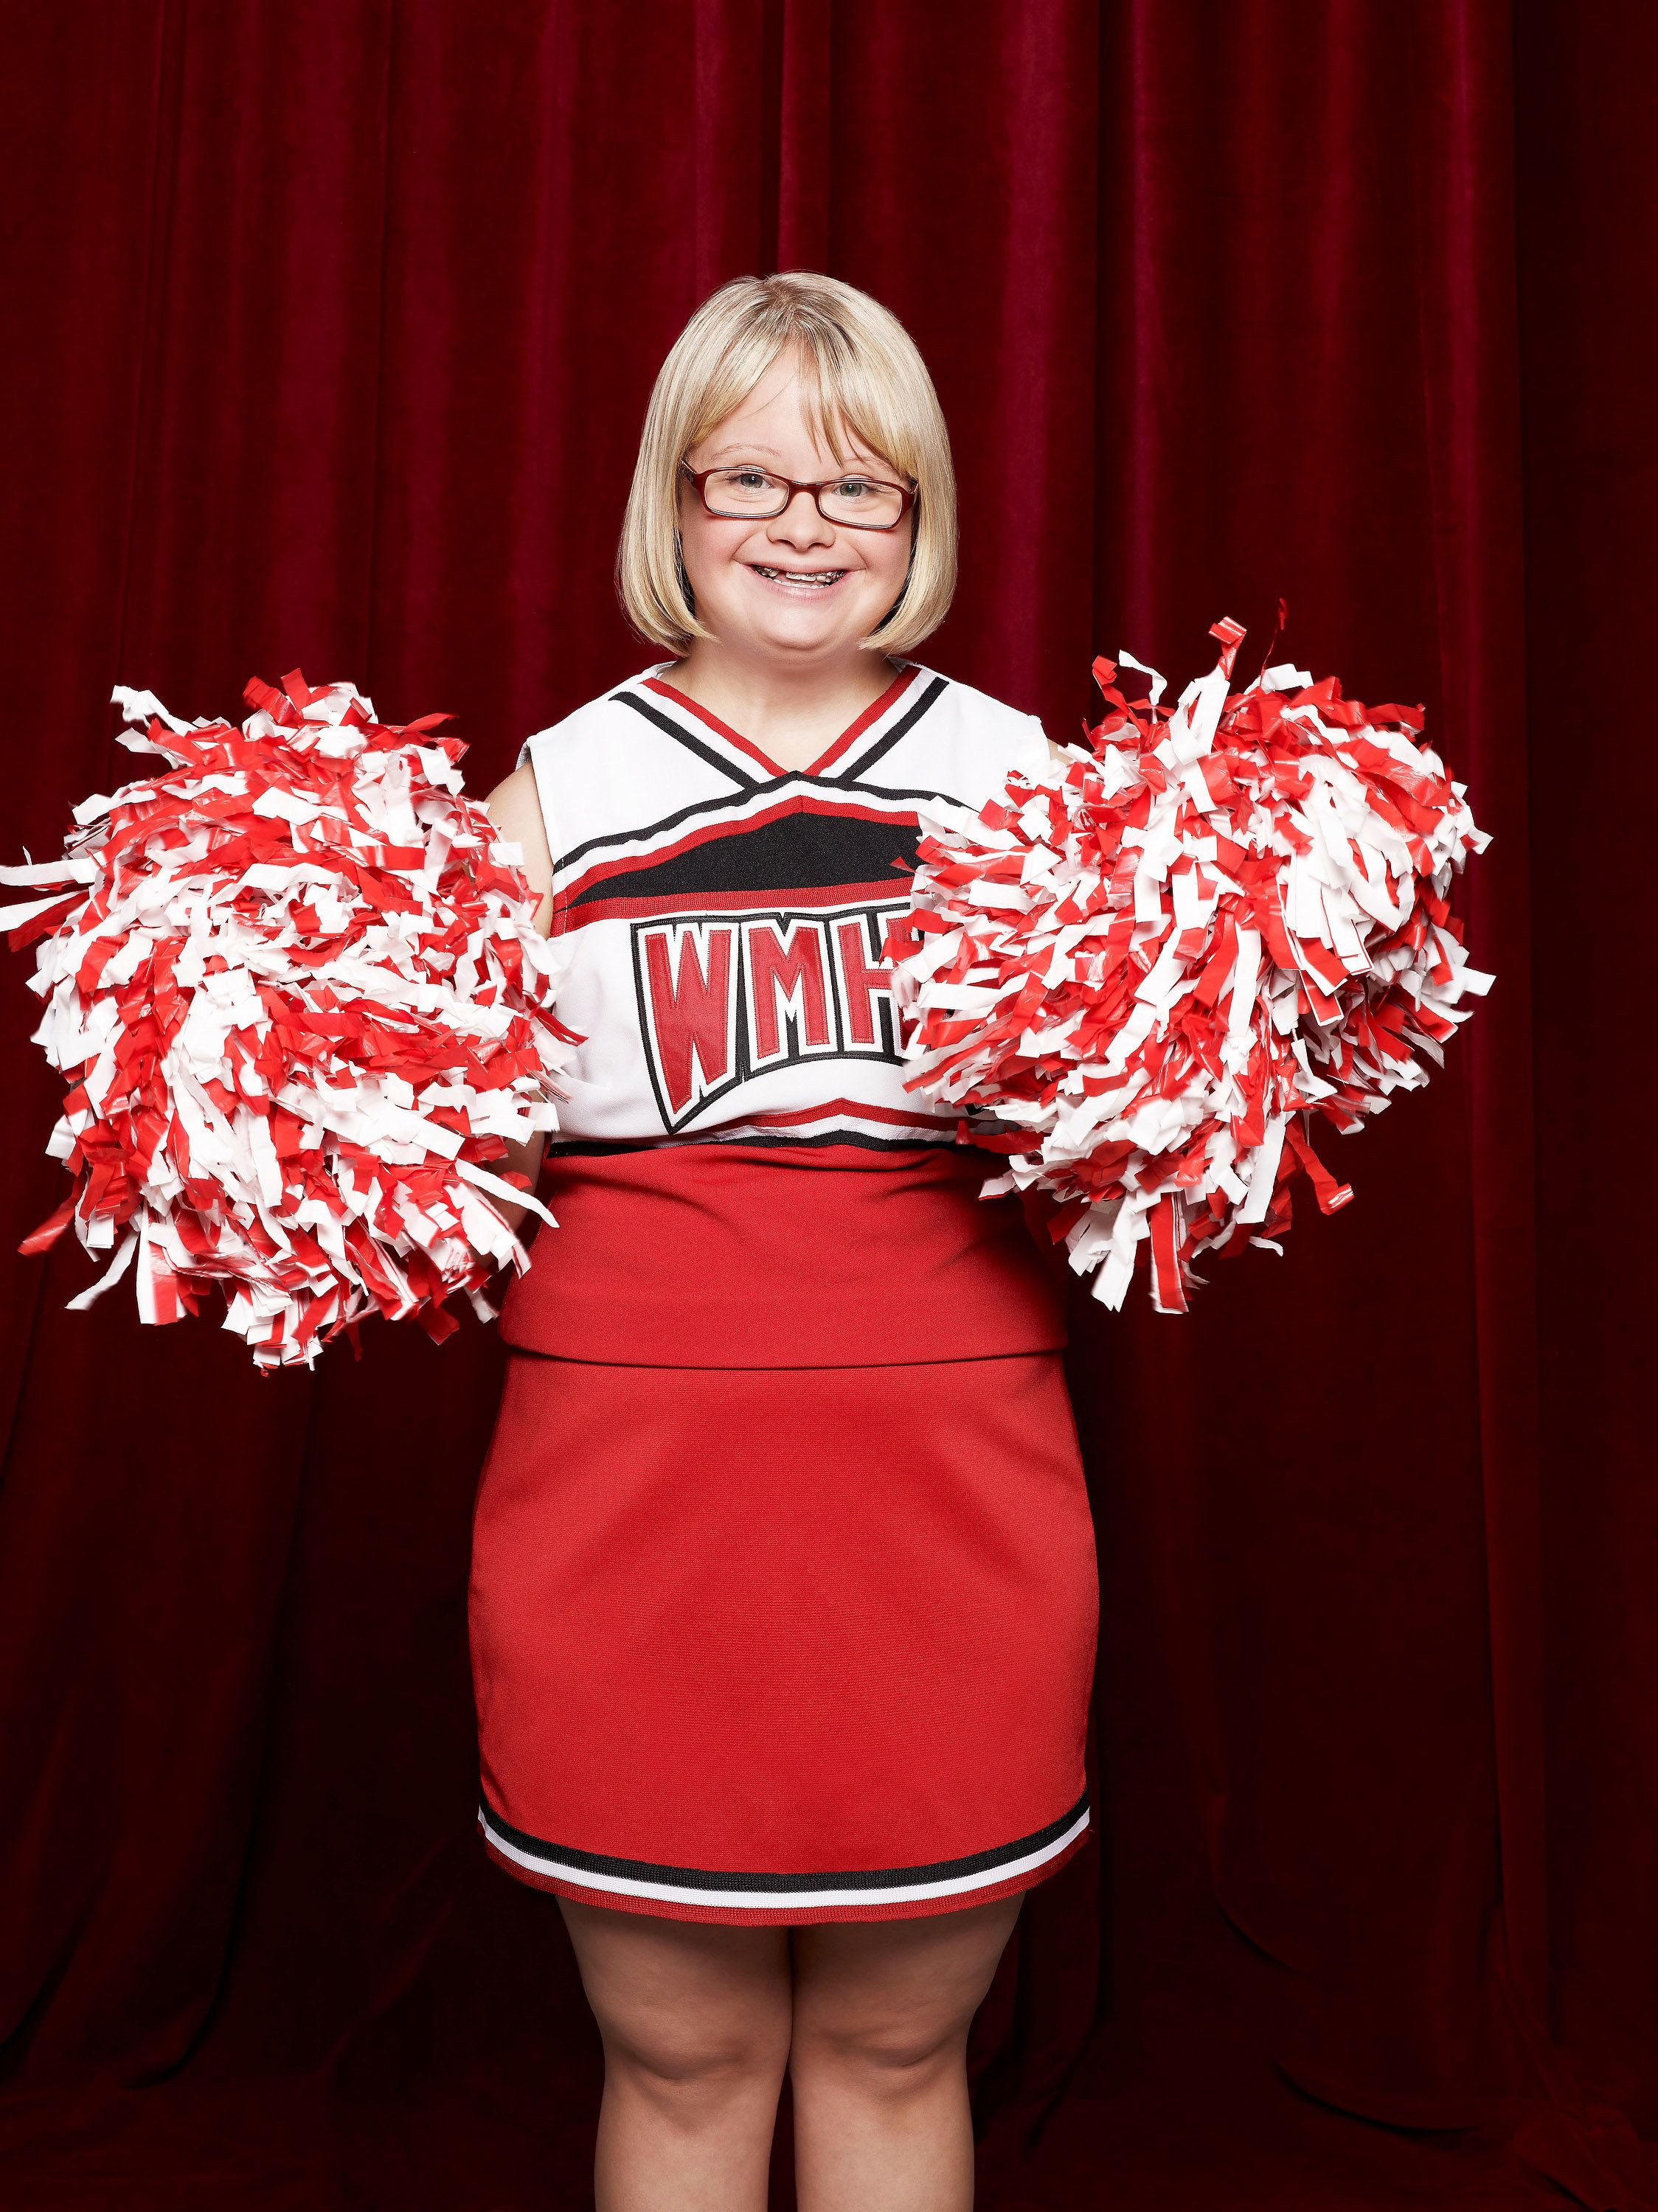 Lauren Potter AKA Becky From Glee Got Engaged To Her Childhood Friend HuffPost